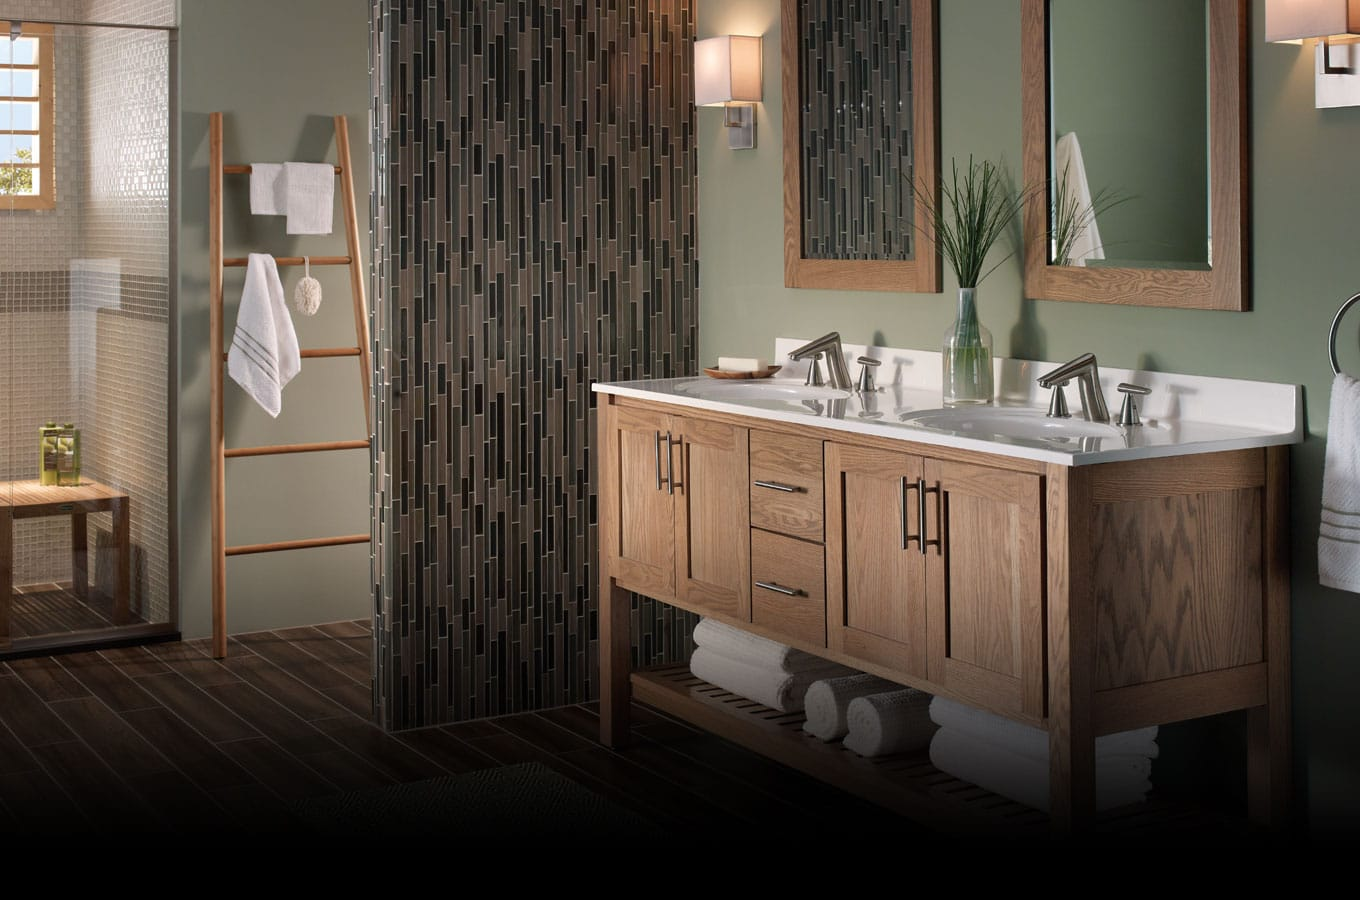 Bathroom Vanity Vendors kitchen cabinets, bath vanities, vanity tops, interior & exterior